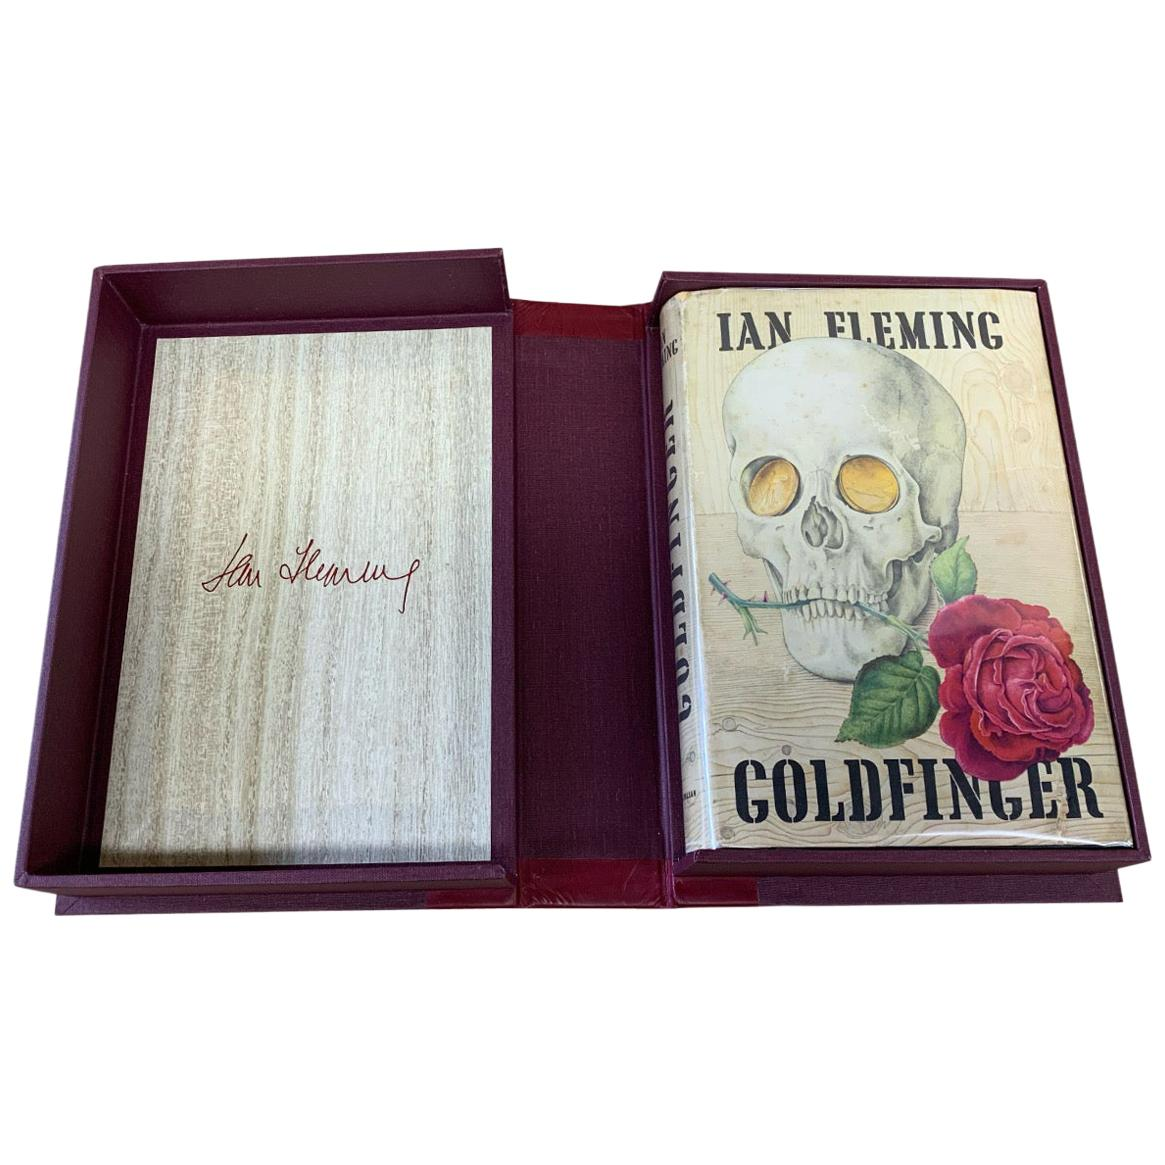 Goldfinger, Signed by Ian Fleming, First American Edition, First Printing, 1959